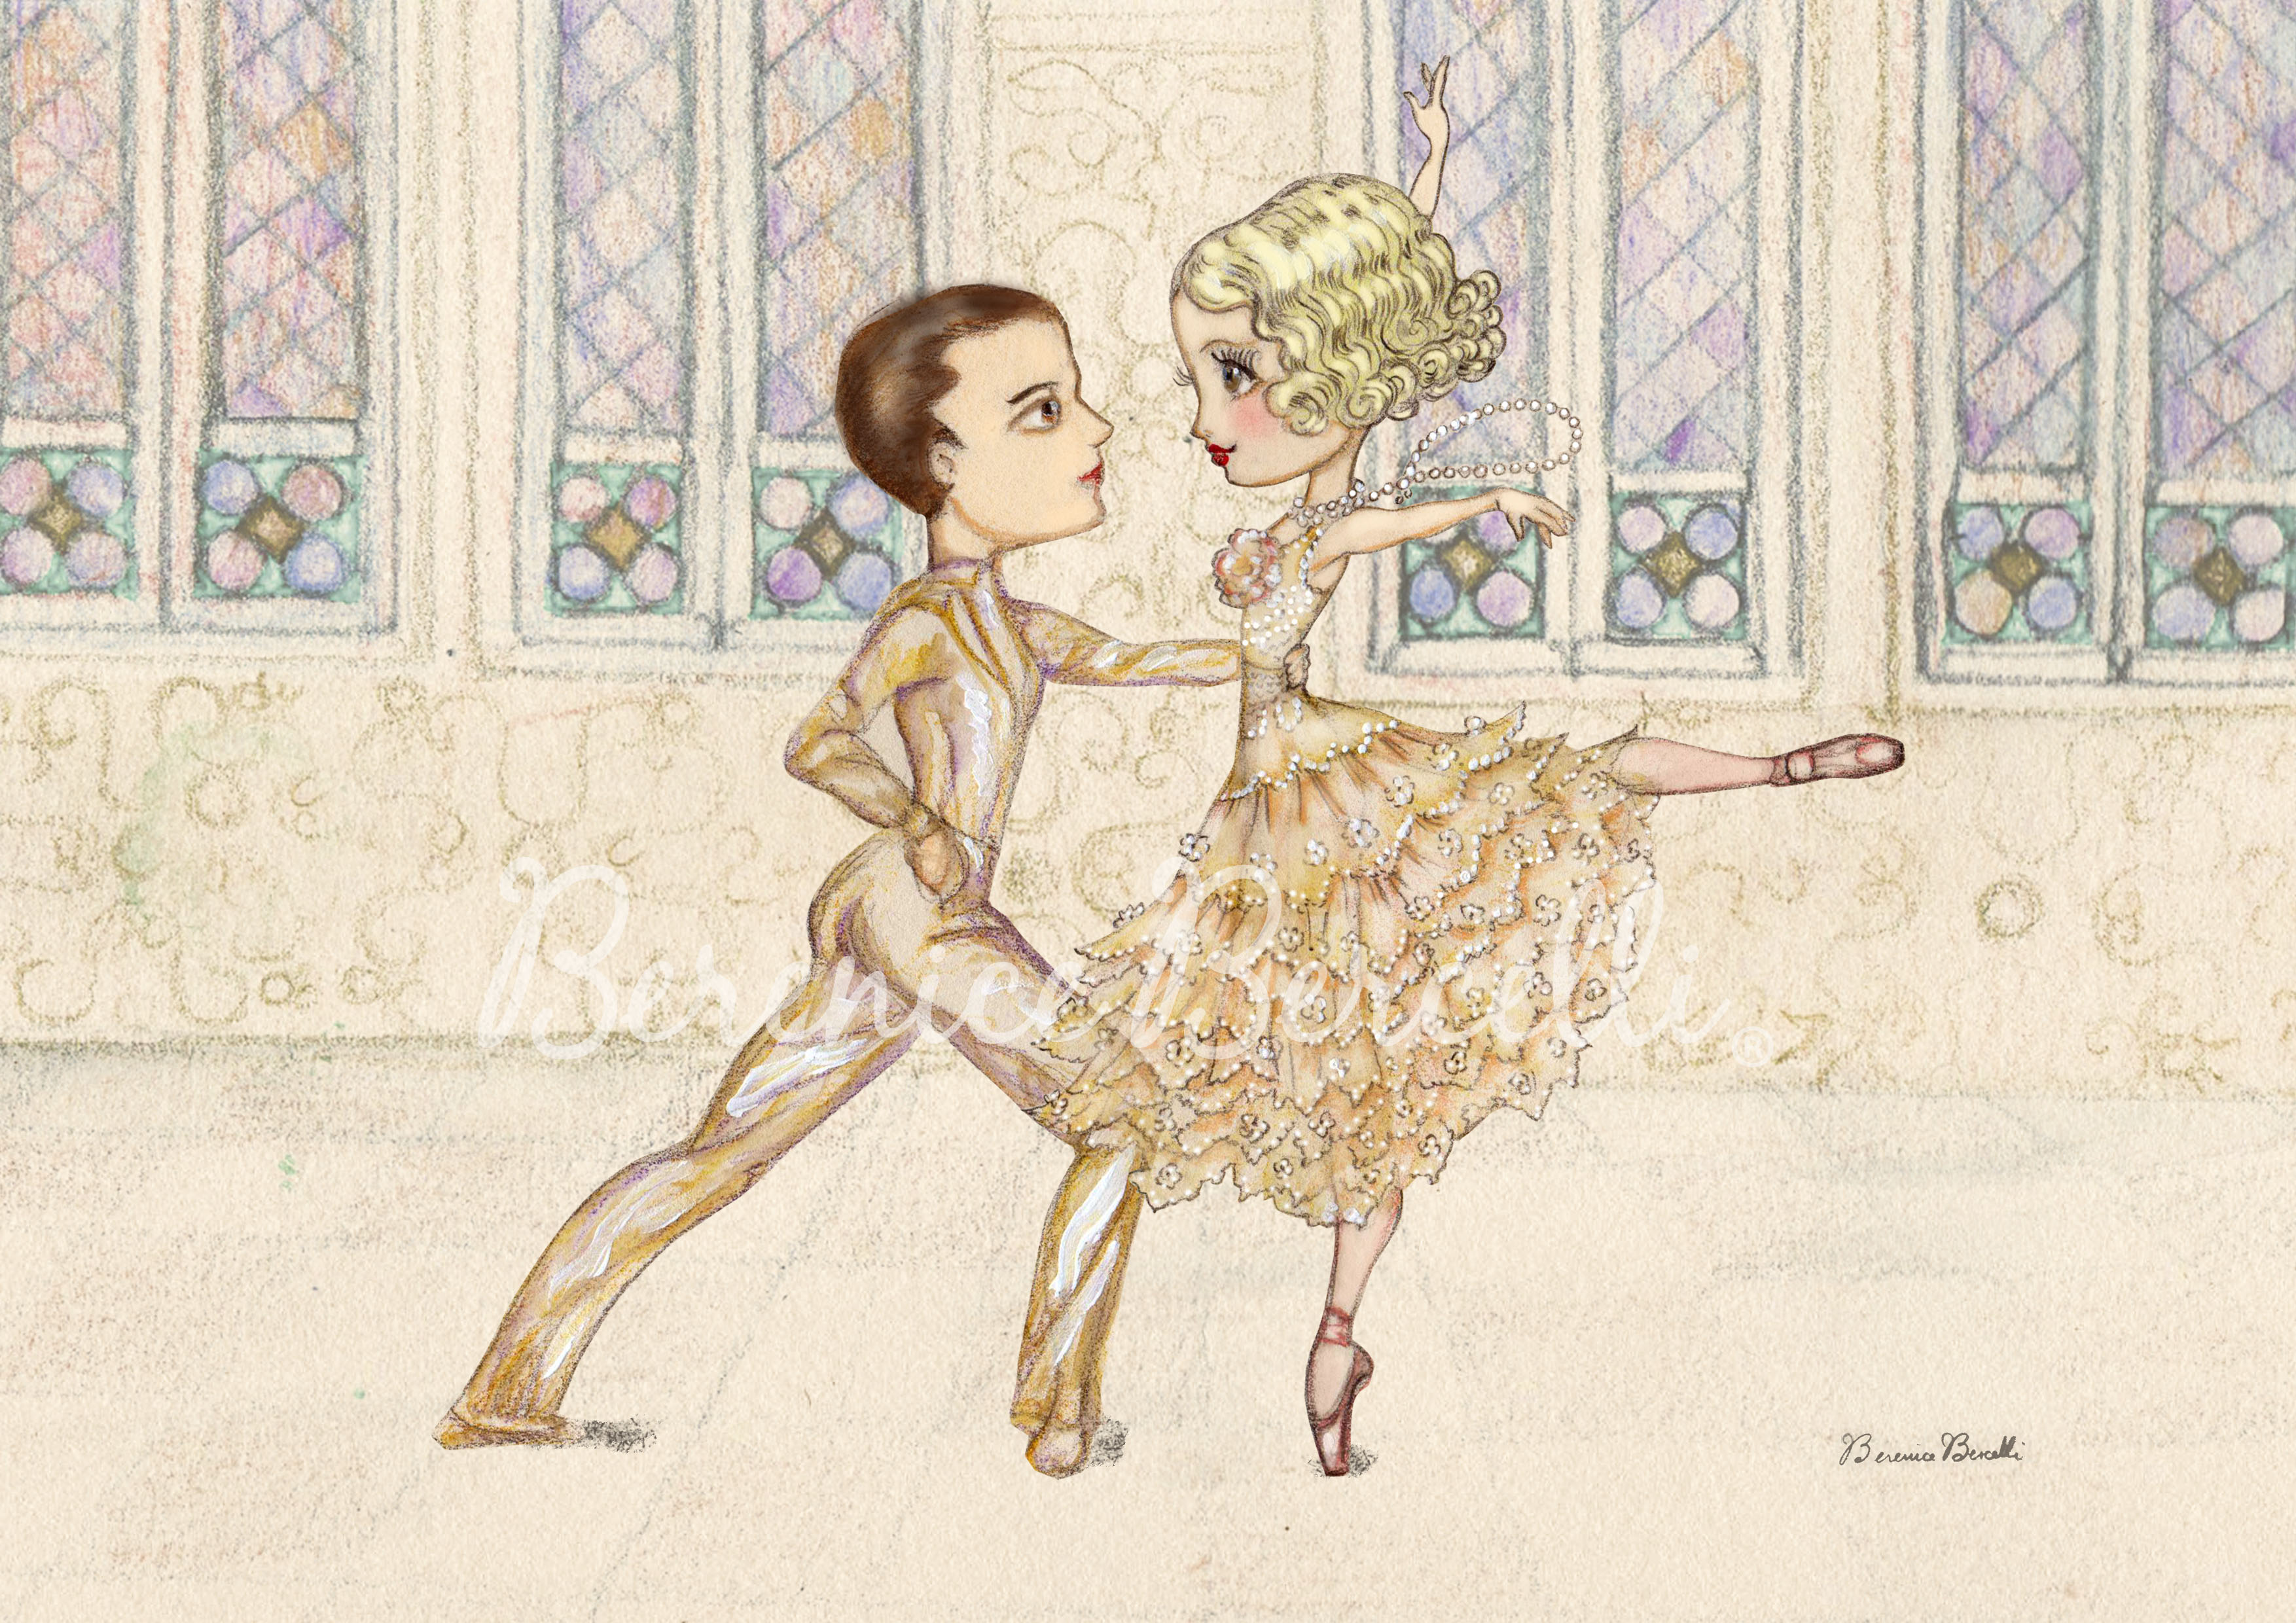 The Great Gatsby inspired illustration exclusively for Ballet News